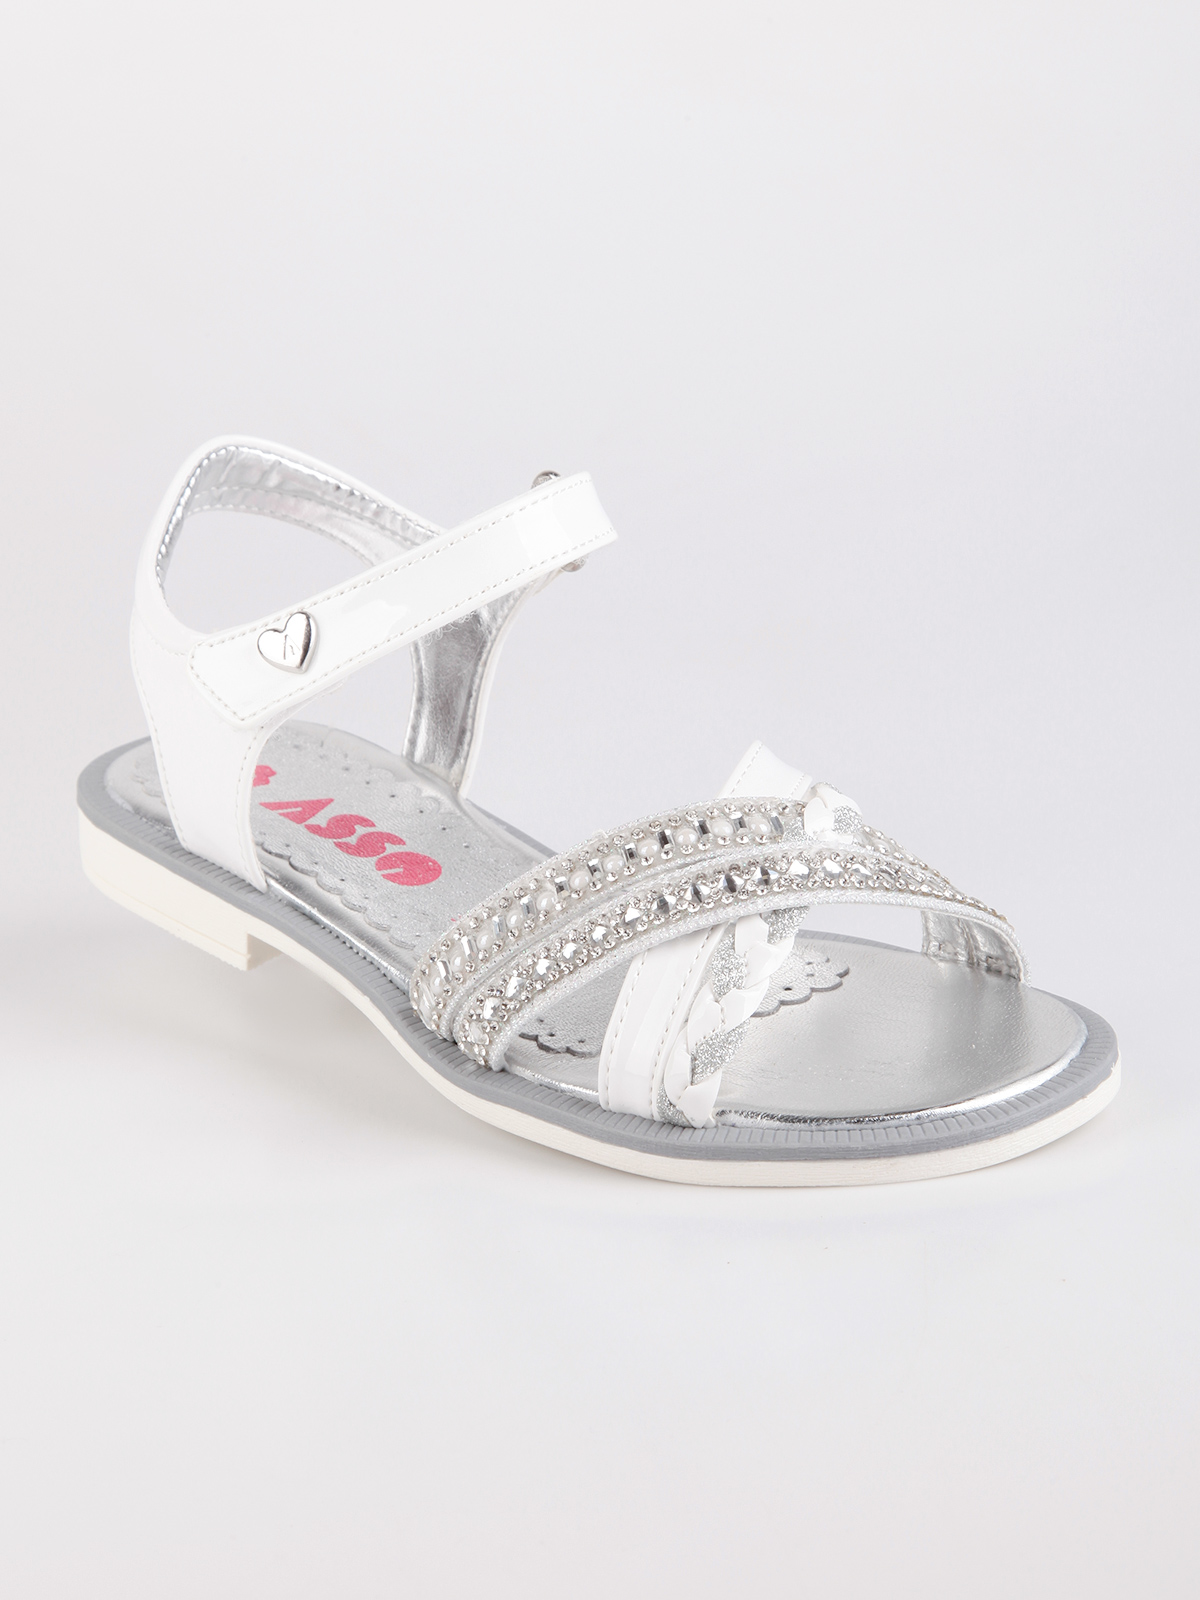 ACE white sandals with rhinestone|  - title=